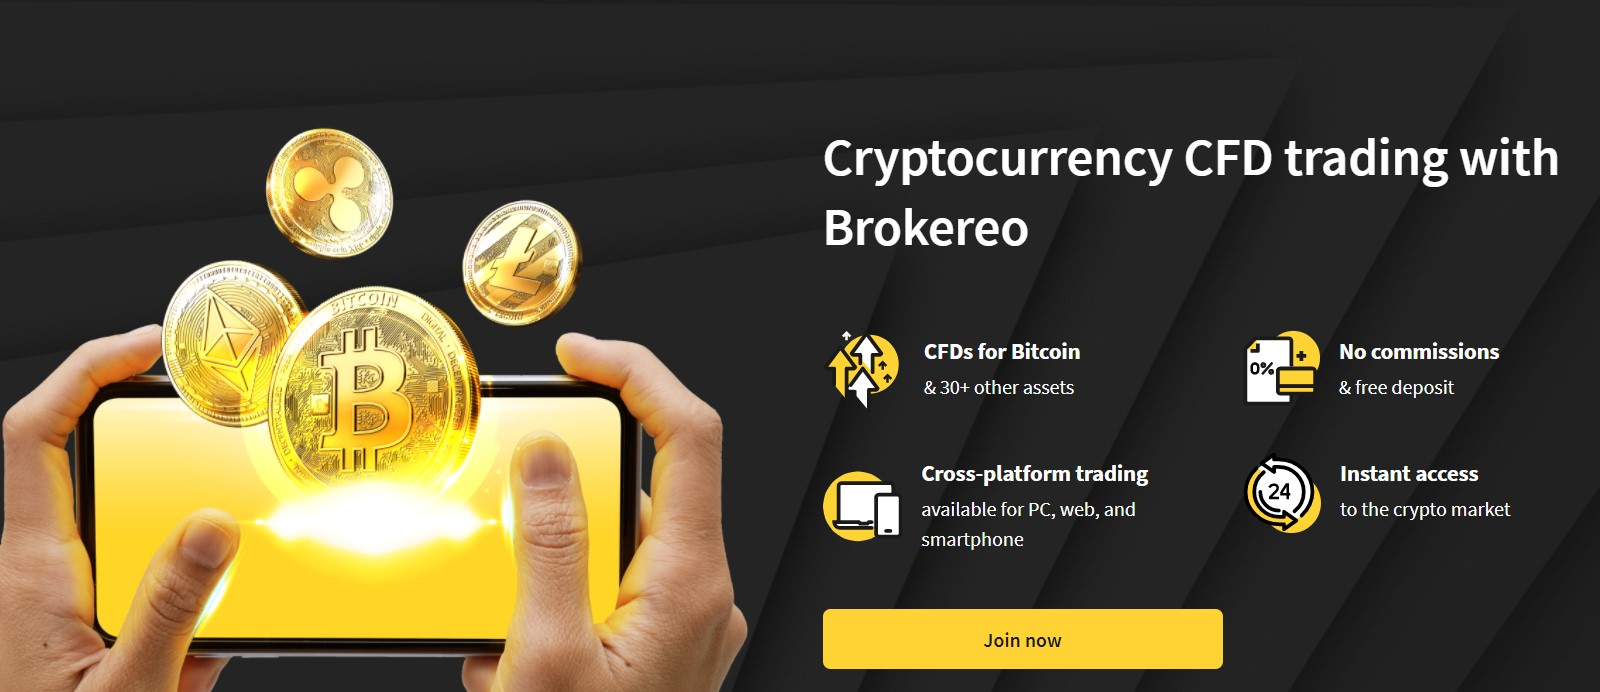 ar cryptocurrency trading halal)